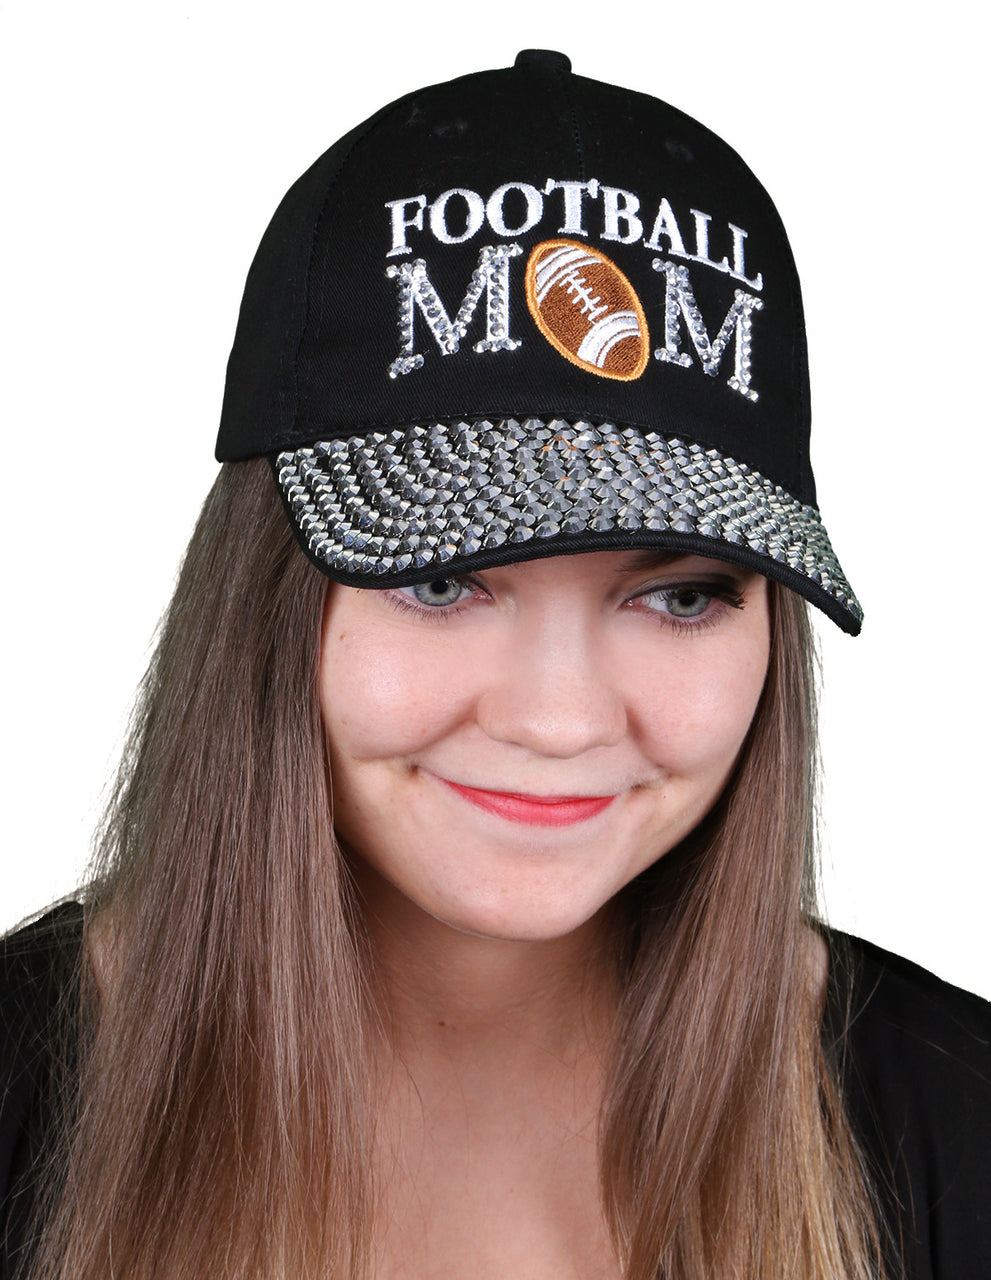 Funky Junque's Women's Silver Rhinestone Bill Sports Mom Bling Baseball Cap Hat - Football Black